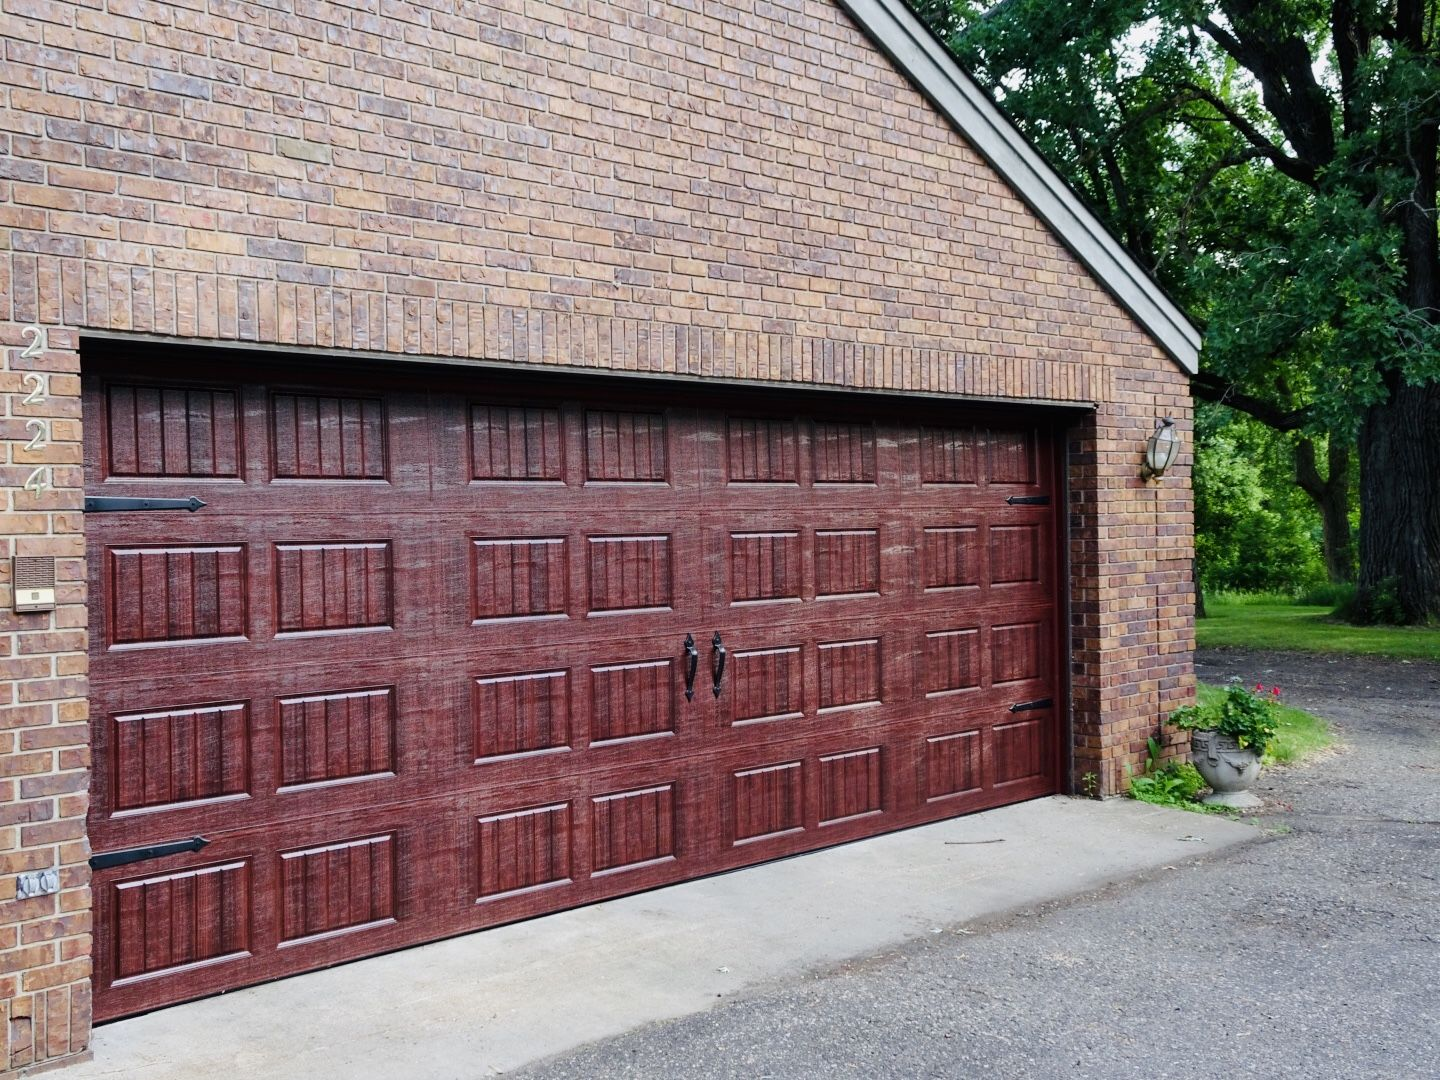 Amarr Hillcrest 3000 Garage Door In Mahogany With Short Panel Bead Board And Decorative Hardware Garage Door Styles Garage Doors Garage Door Types